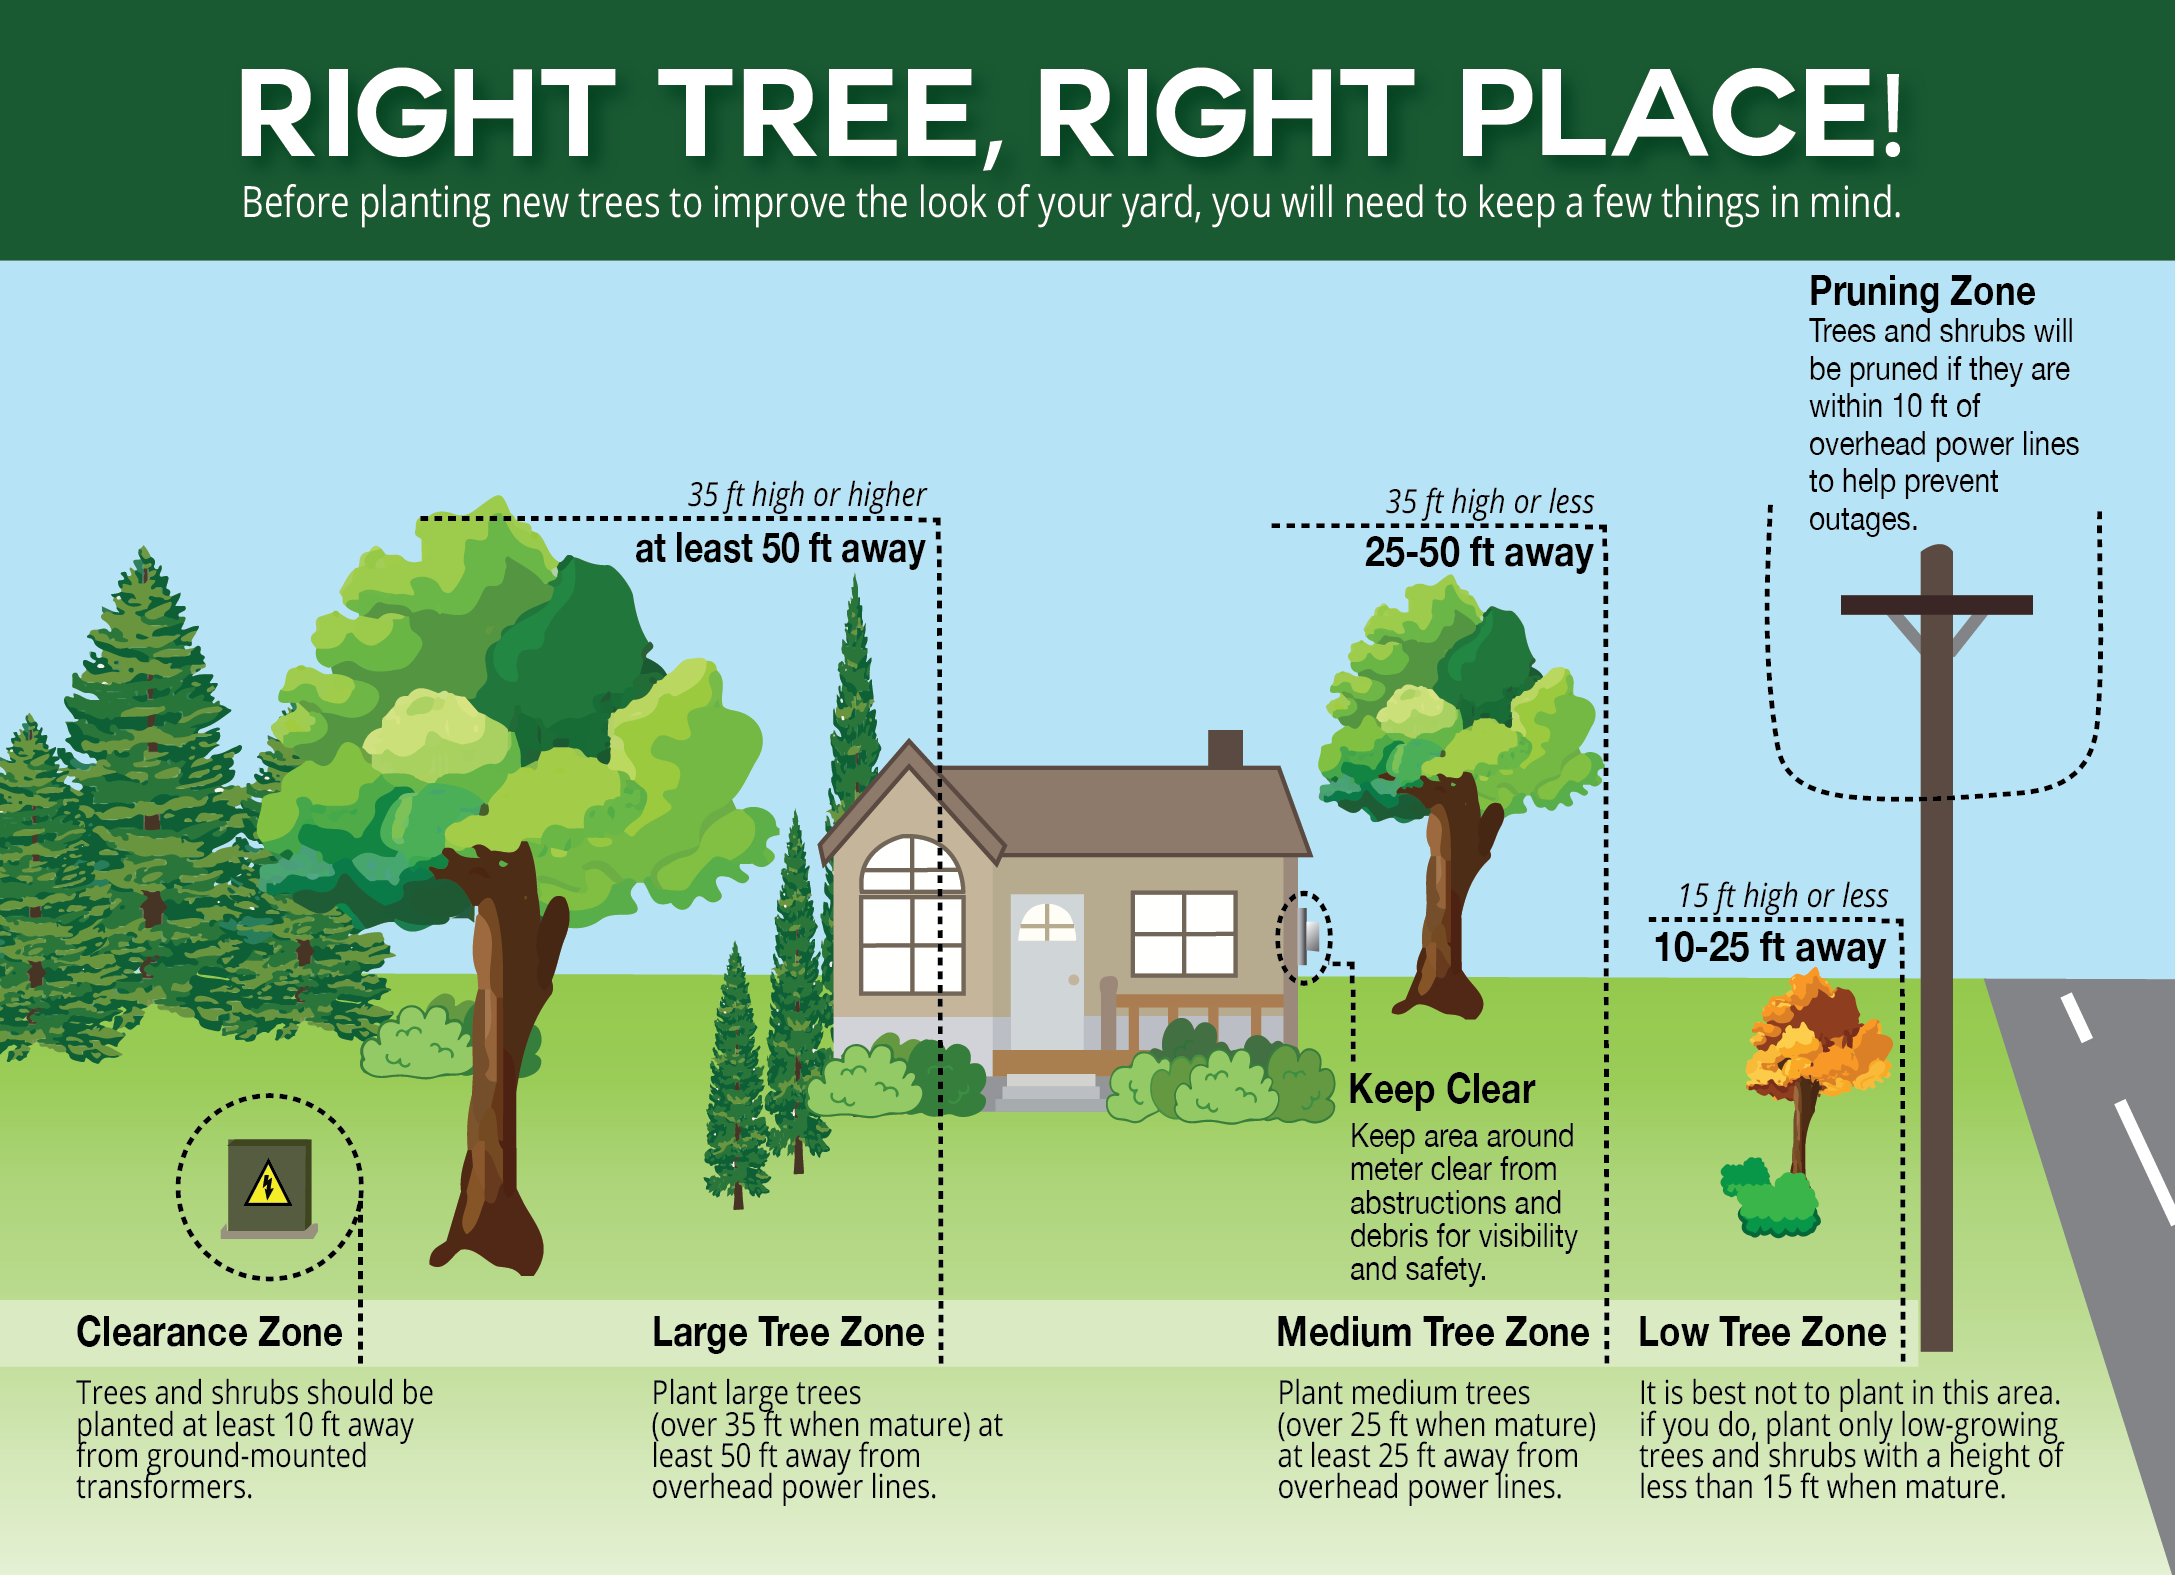 Right-Tree-Right-Place-02